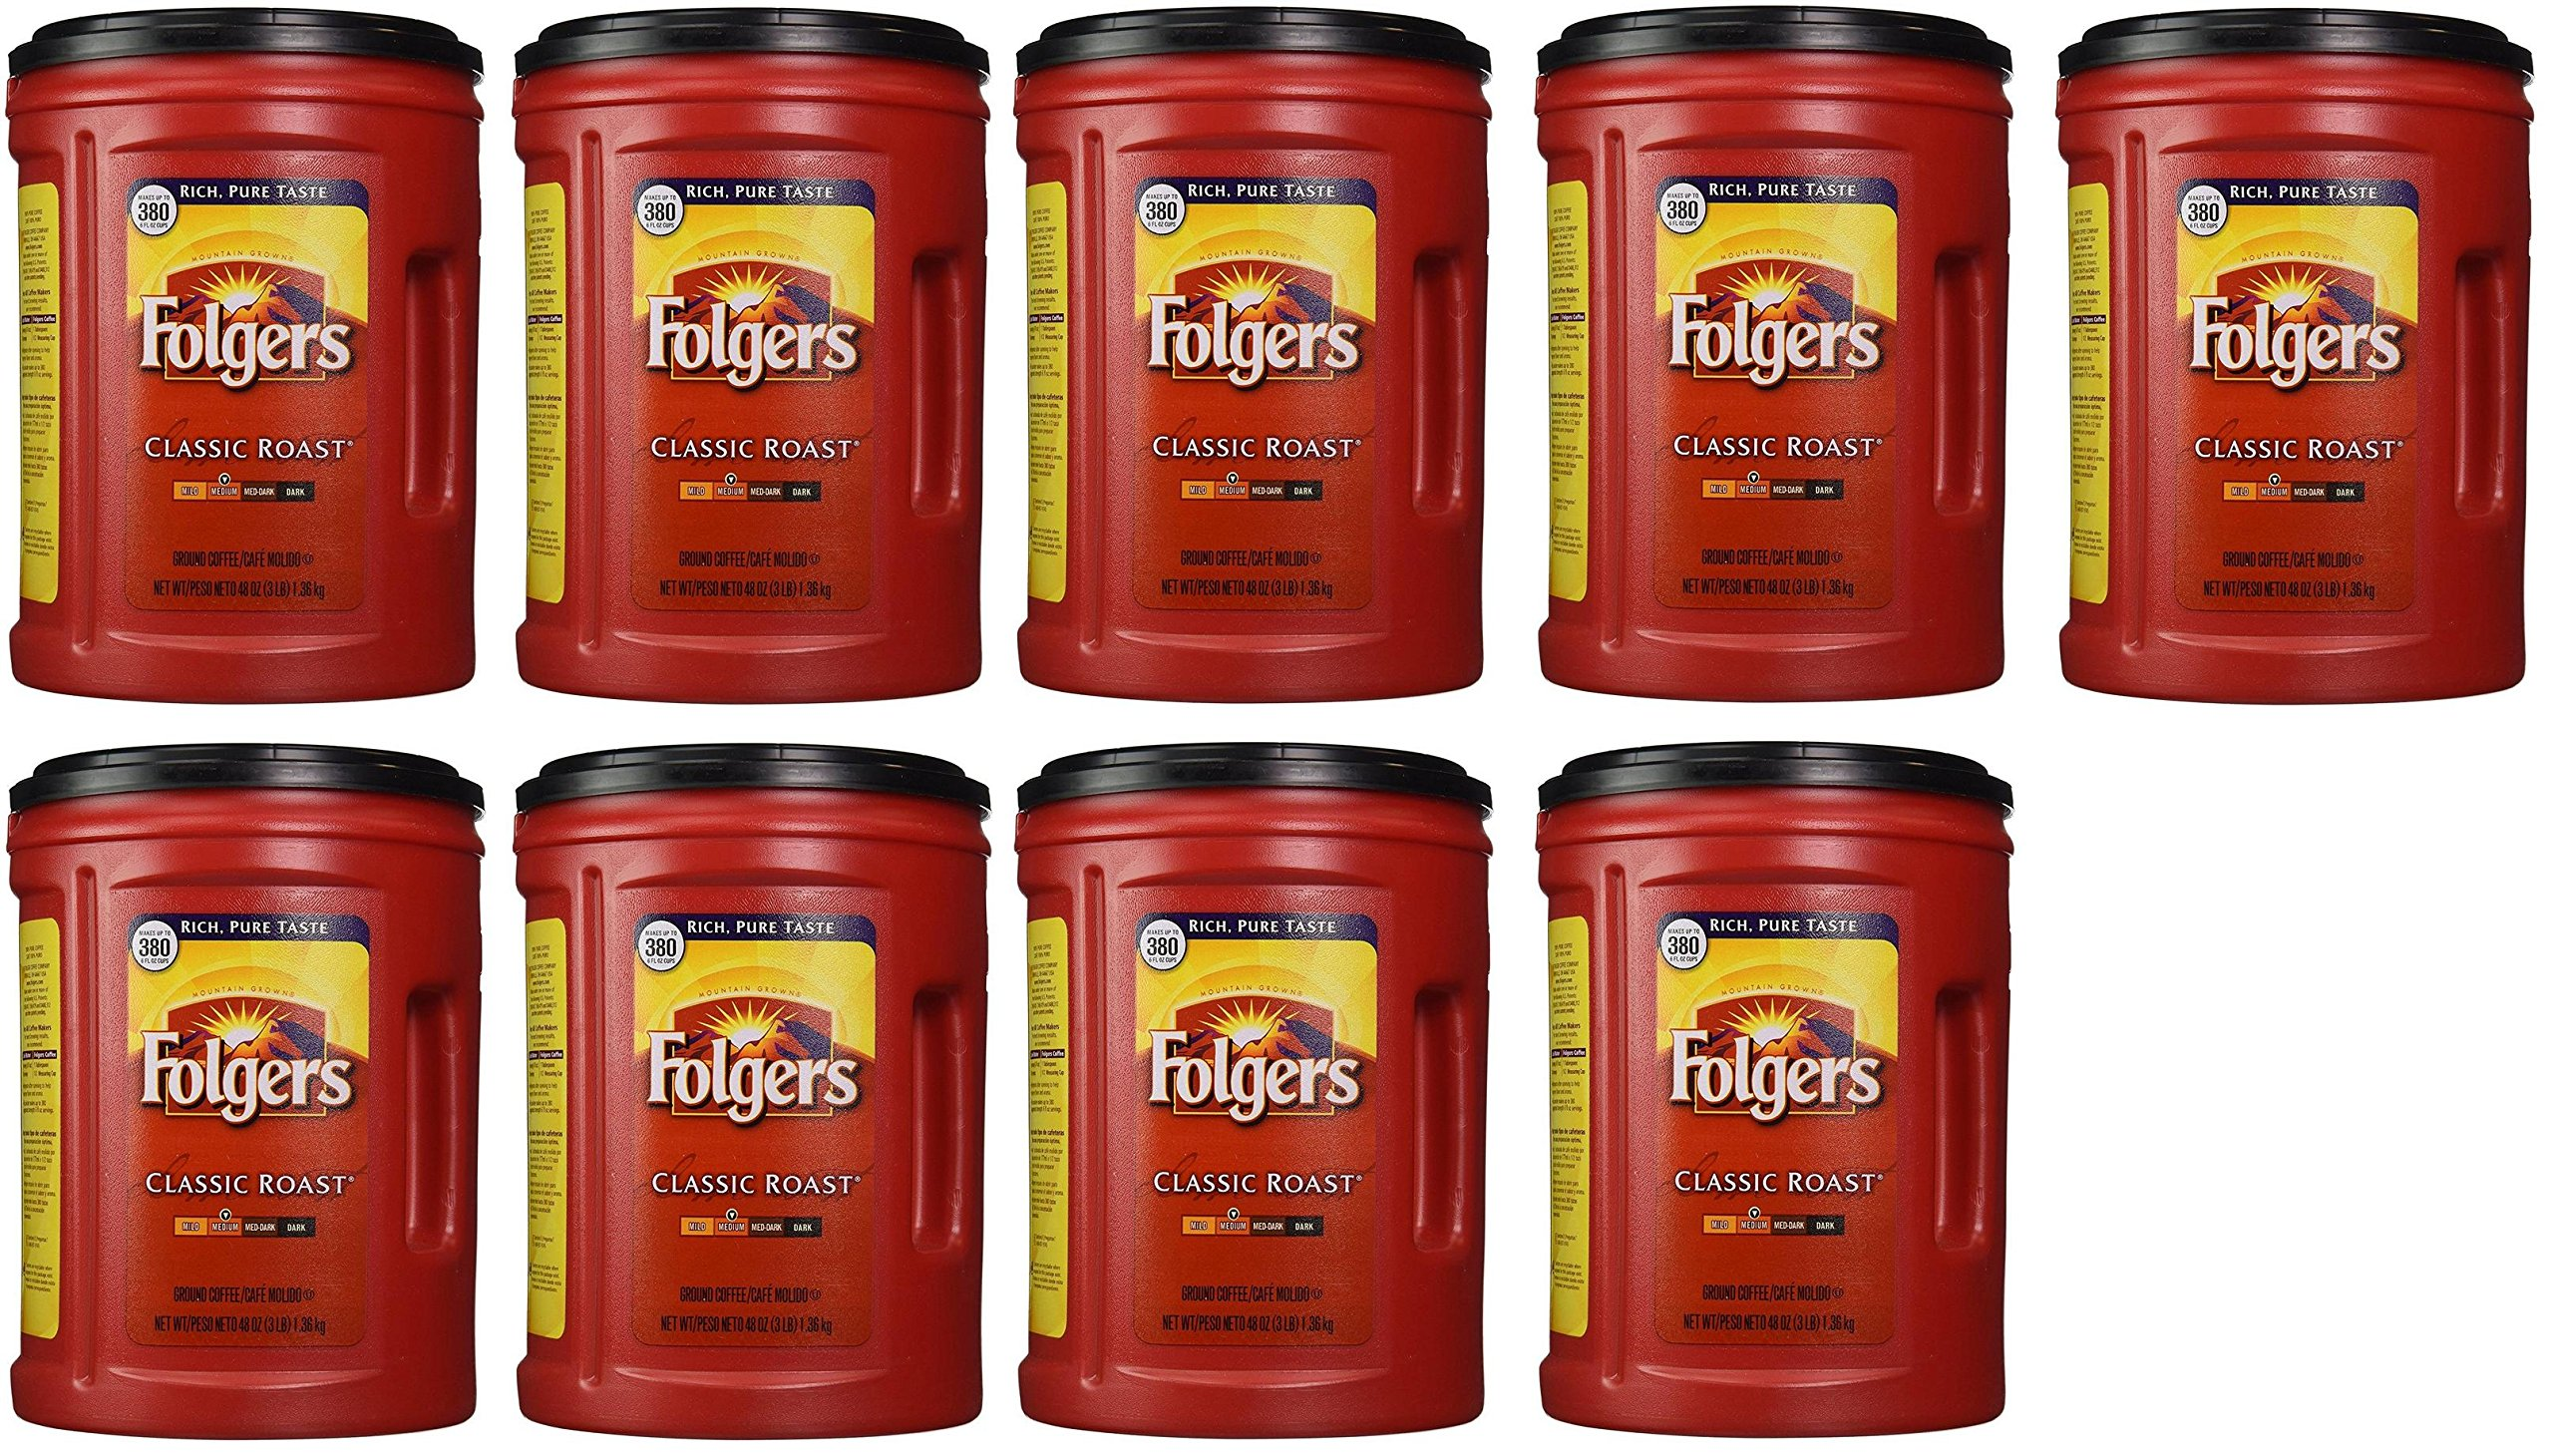 Folgers Coffee, Classic(Medium) yyTpBA Roast, 48 Ounce, 9 Pack